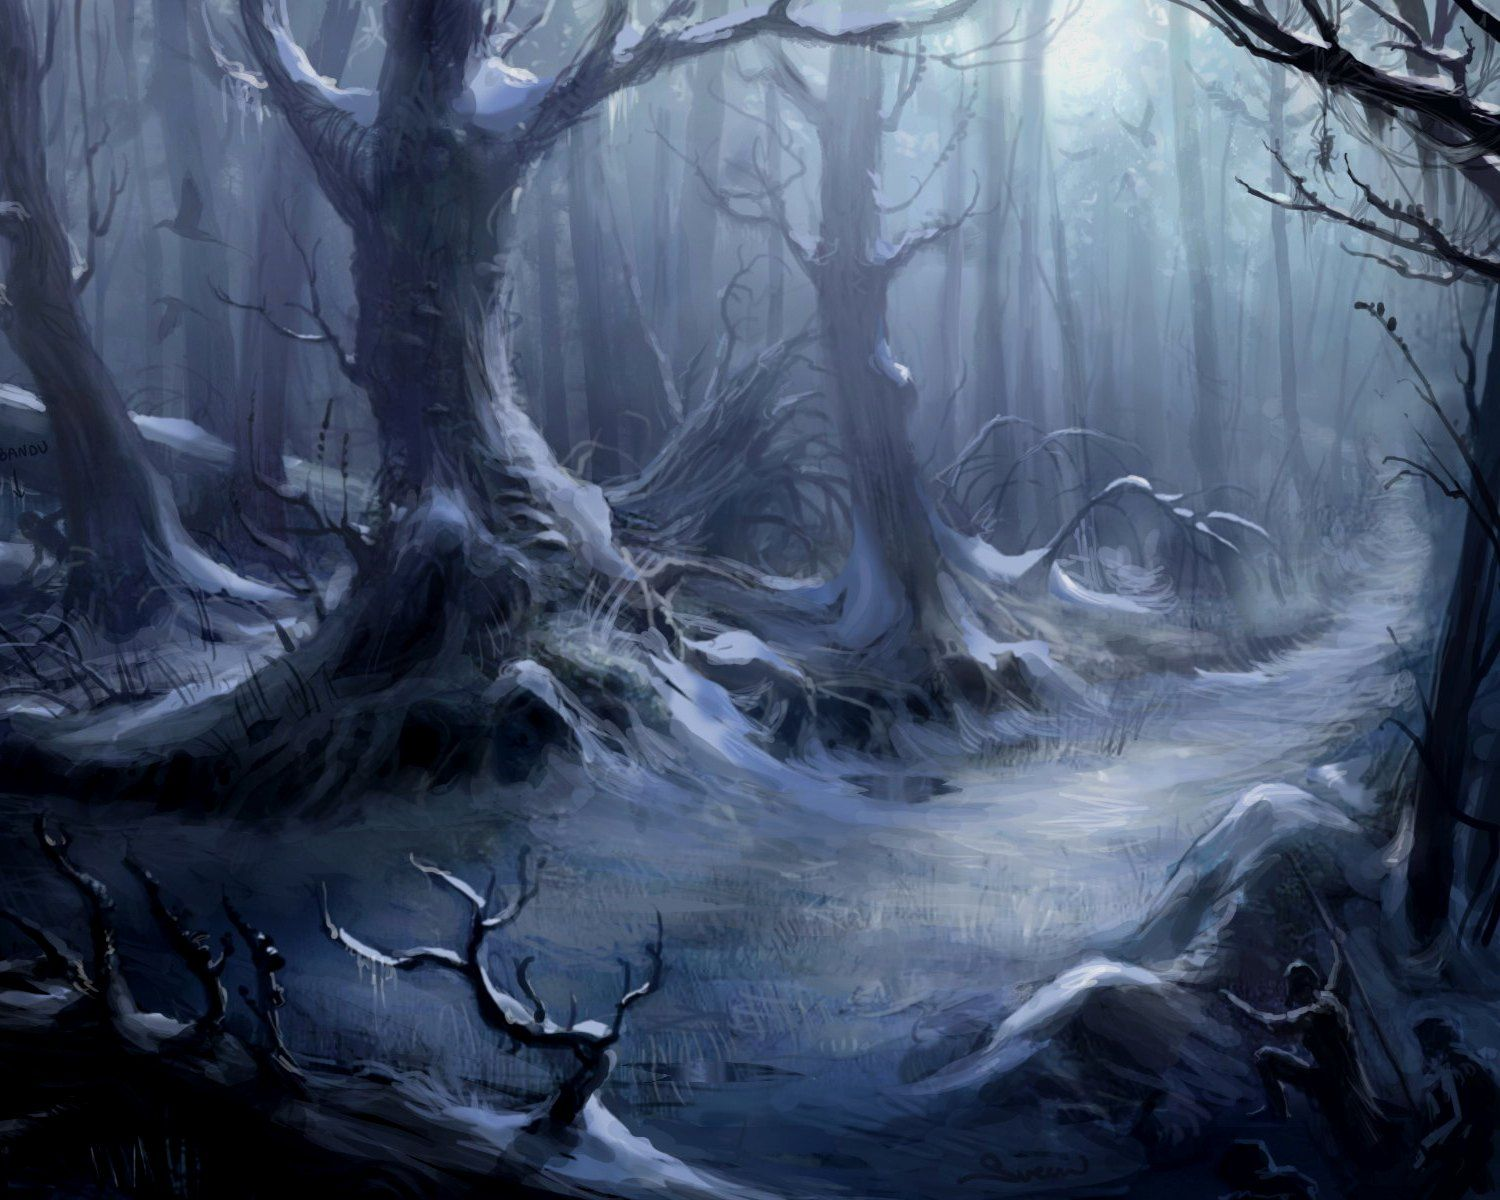 dark creepy horror spooky scary halloween forest wallpaper